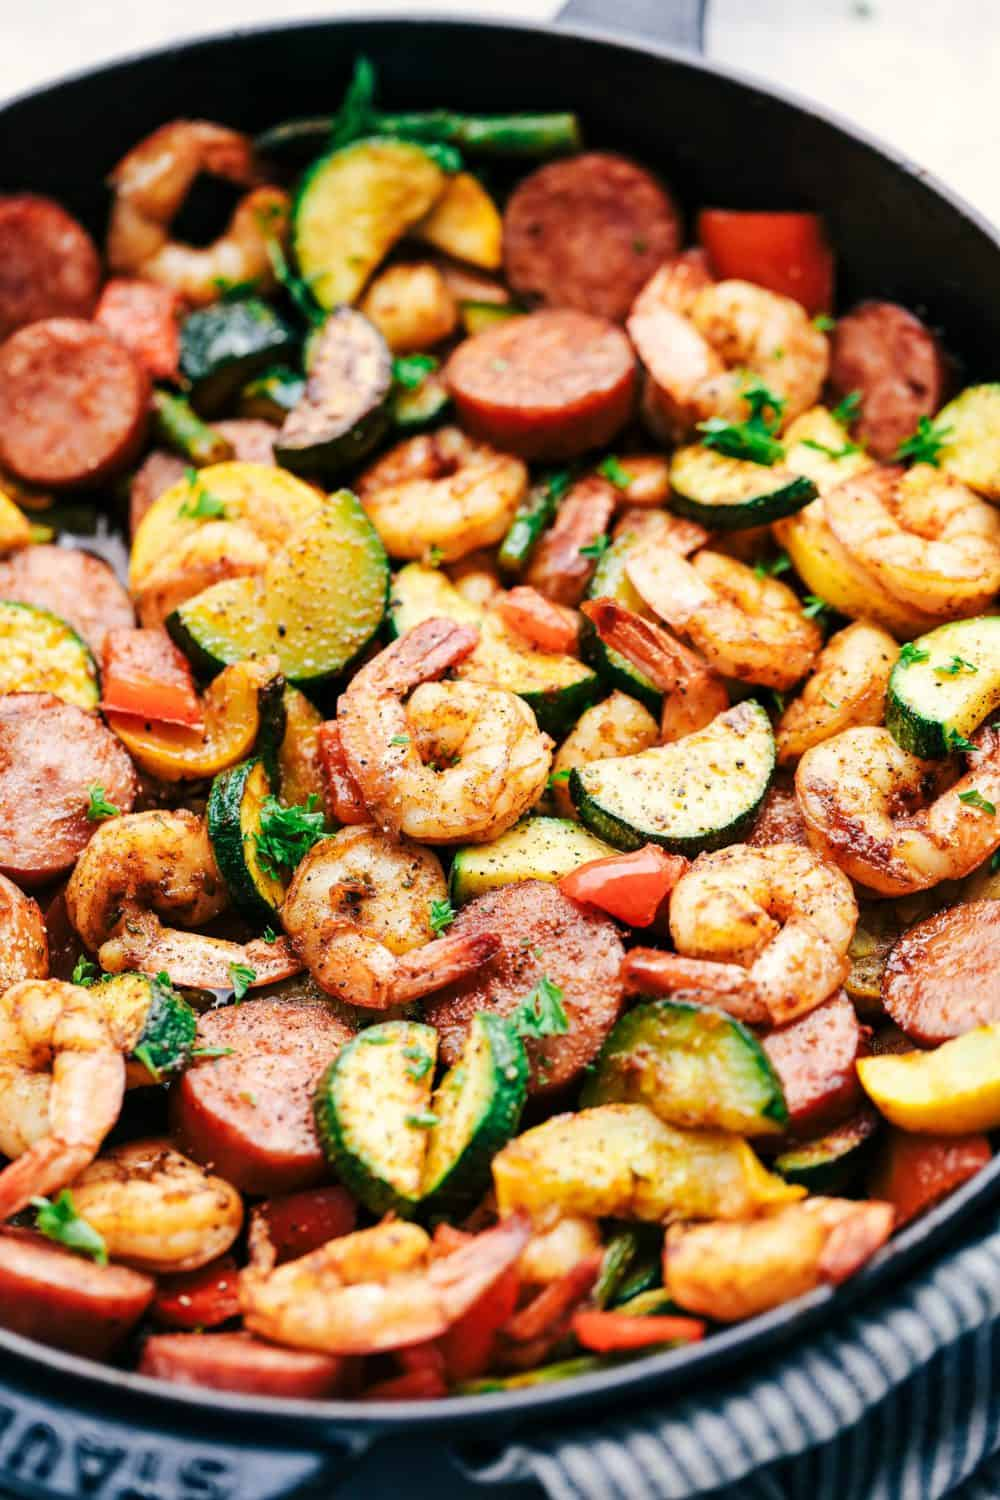 Cajun Shrimp and Sausage Vegetables in a Skillet